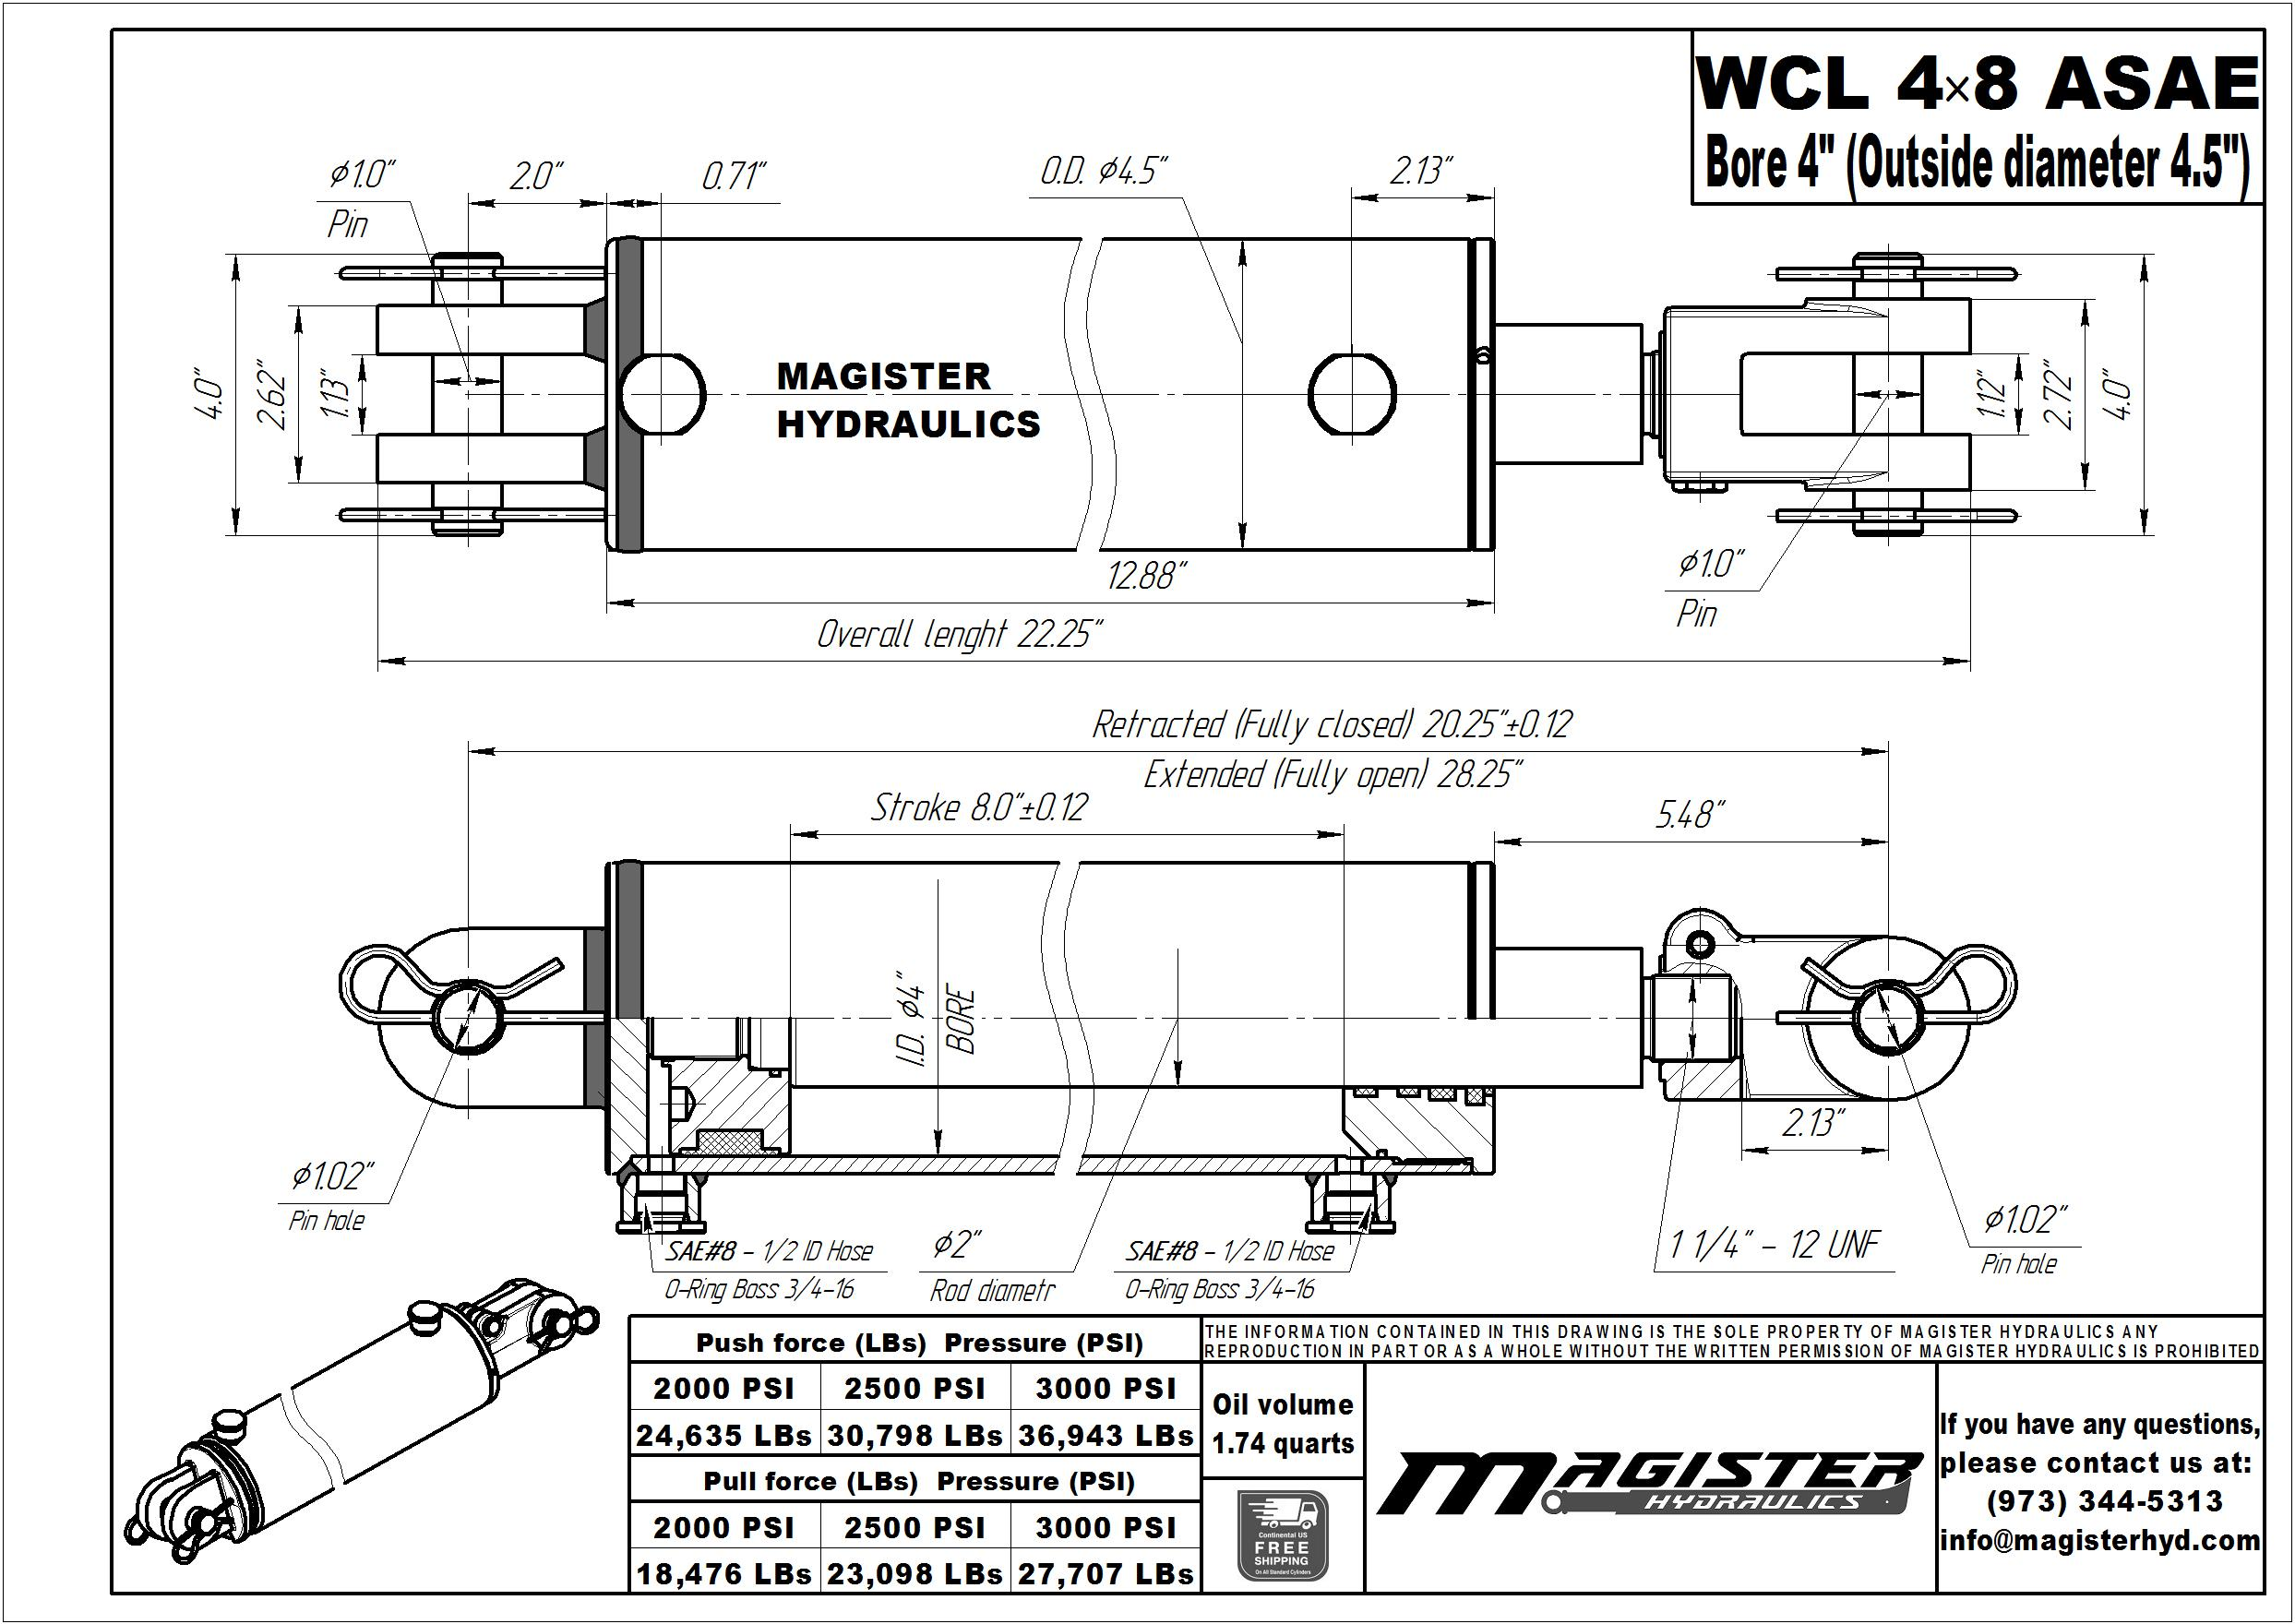 4 bore x 8 ASAE stroke hydraulic cylinder, welded clevis double acting cylinder | Magister Hydraulics